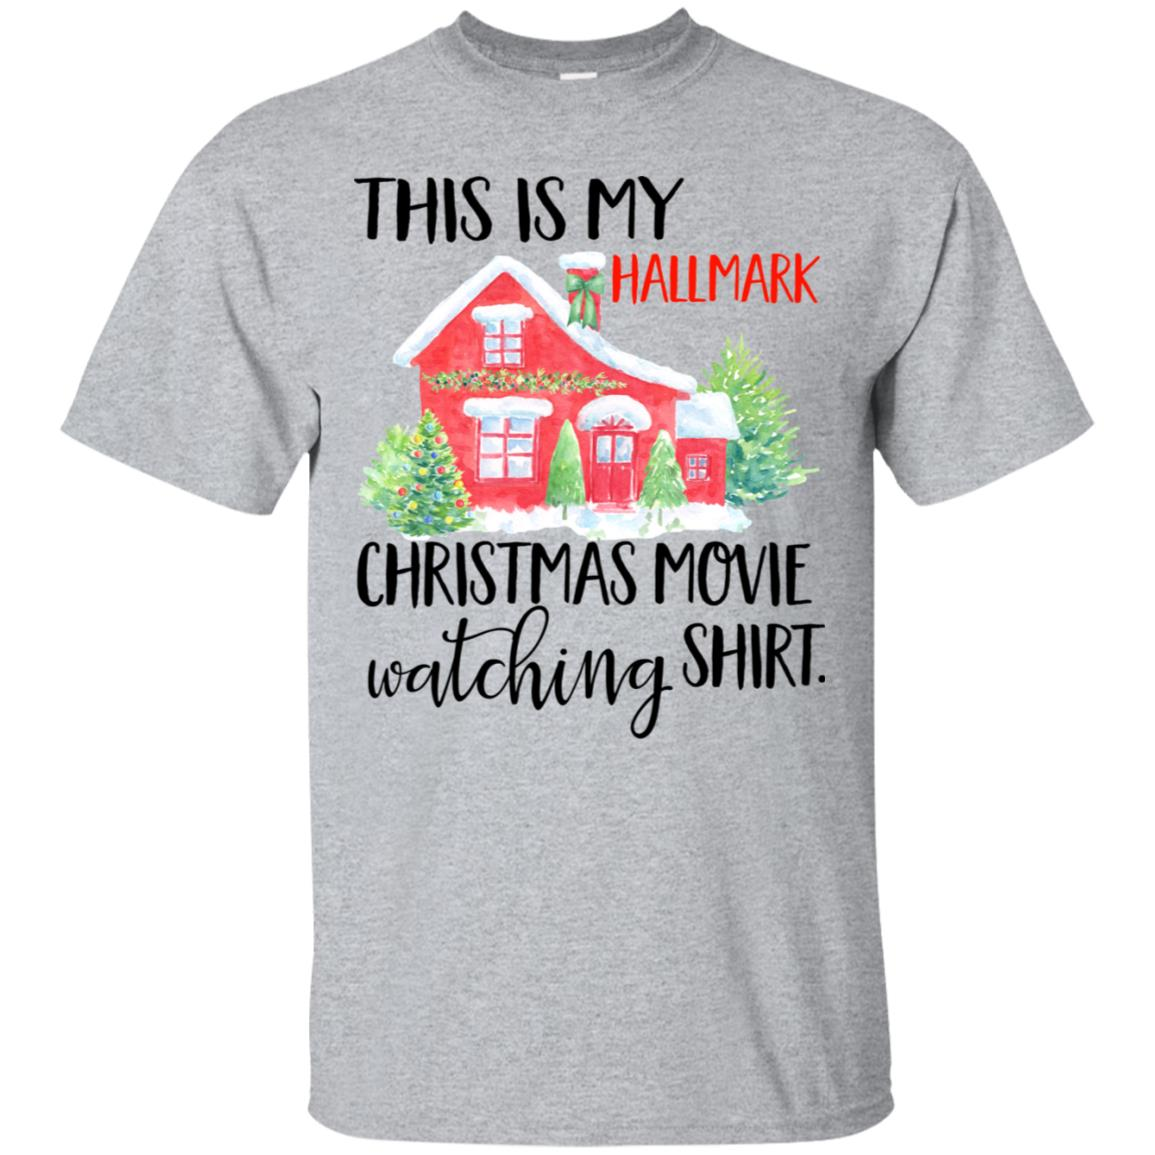 ac329b07515 This is my Hallmark christmas movie watching shirt shirt - image 5448  510x510